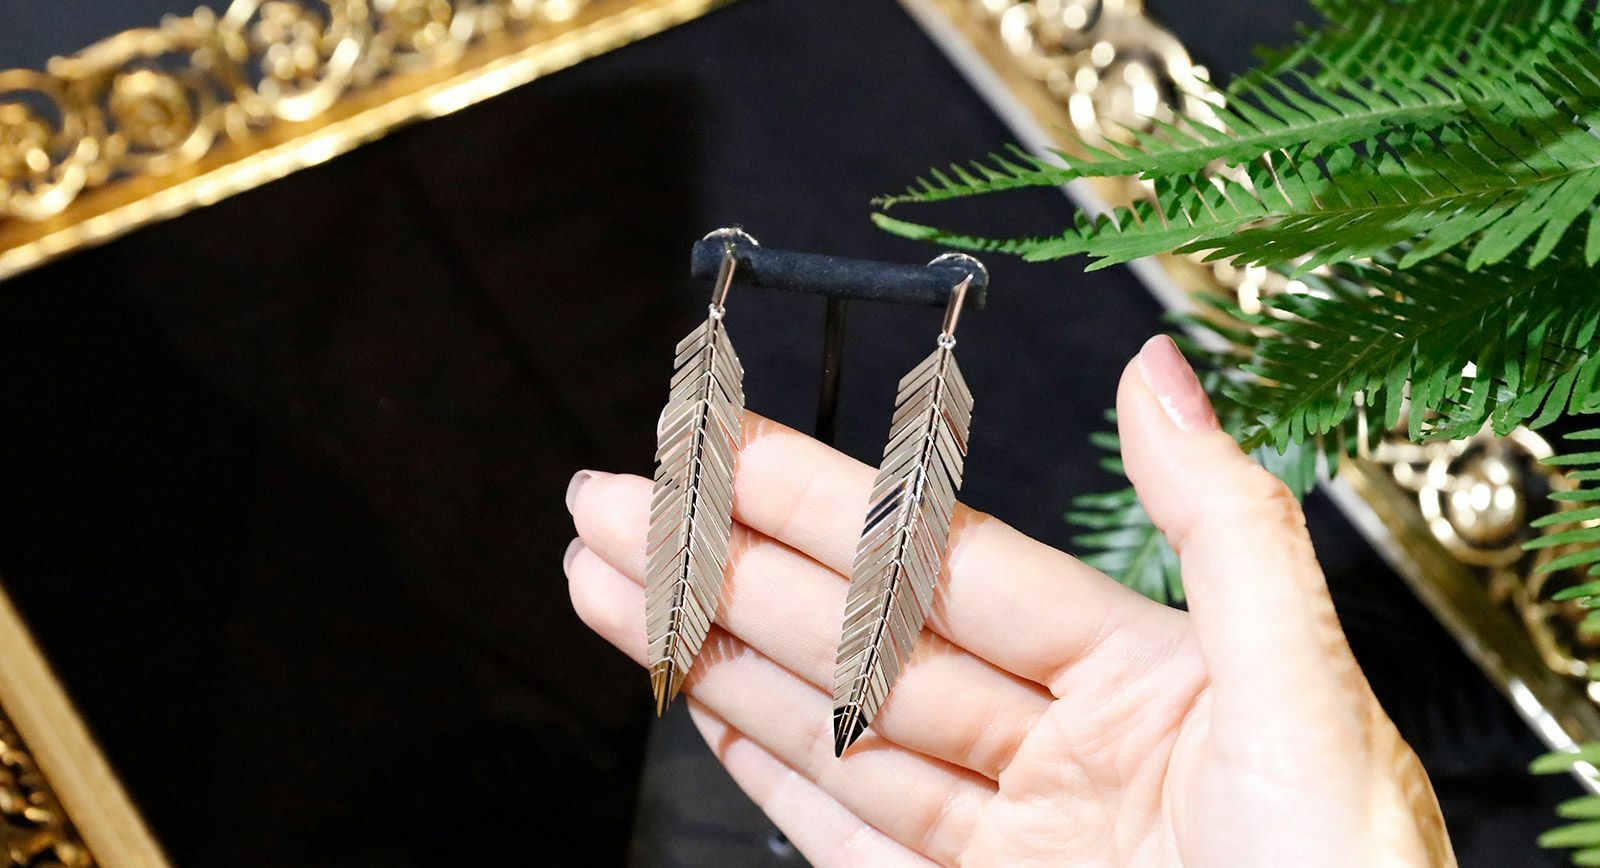 CADAR feather earrings from the Second Skin collection